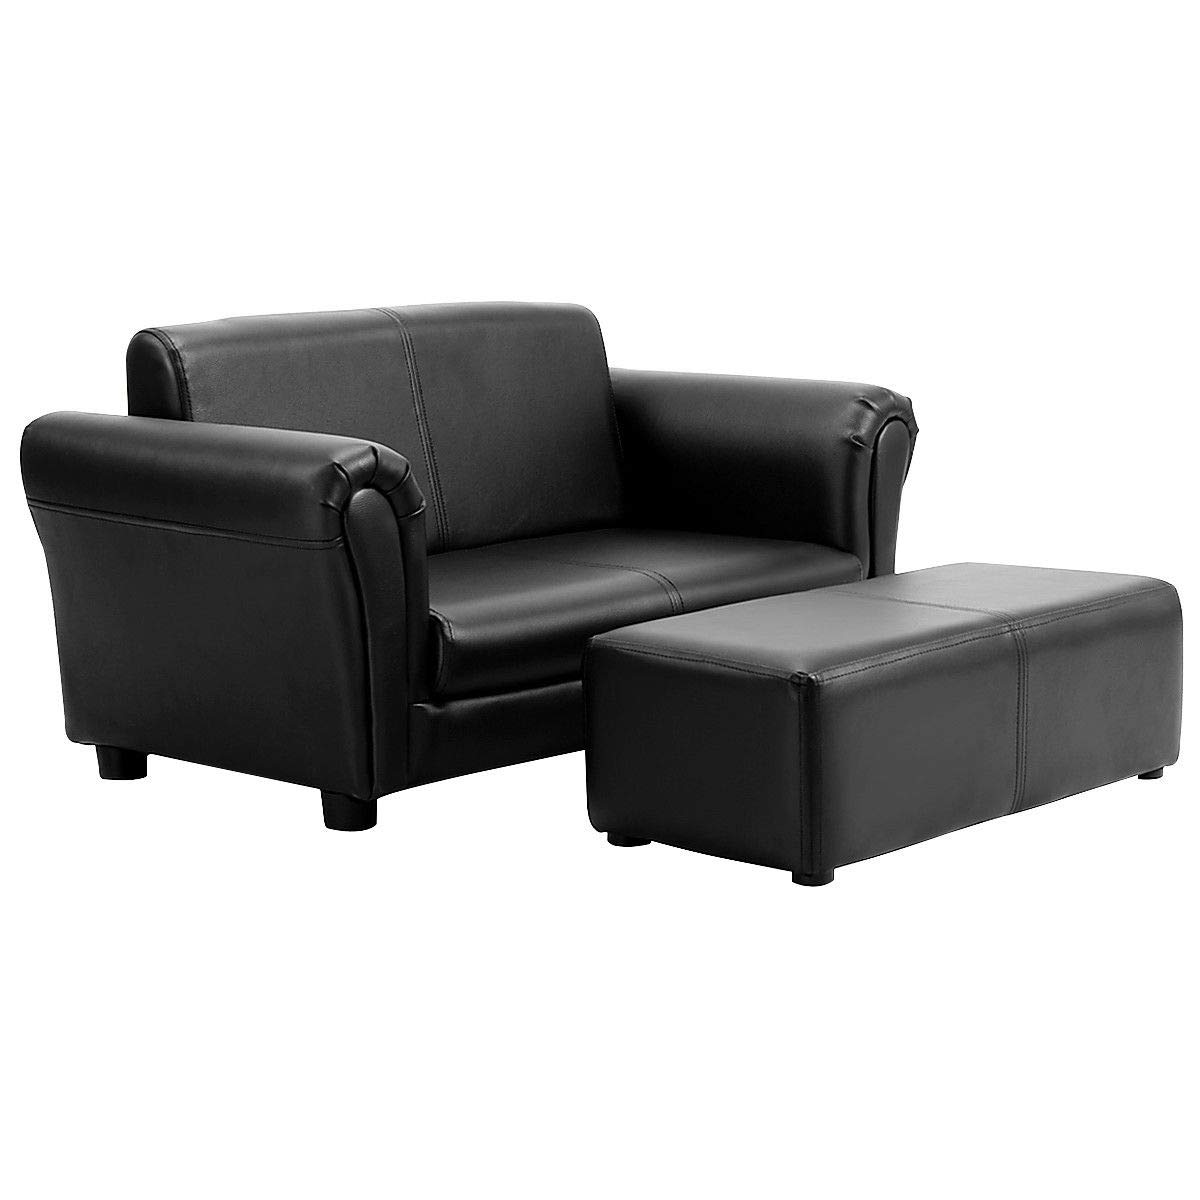 32.5'' Black Multi Functional Kids Sofa Children Couch Lounge Armrest Chair Furniture Seat w/ 21'' Ottoman with Ebook